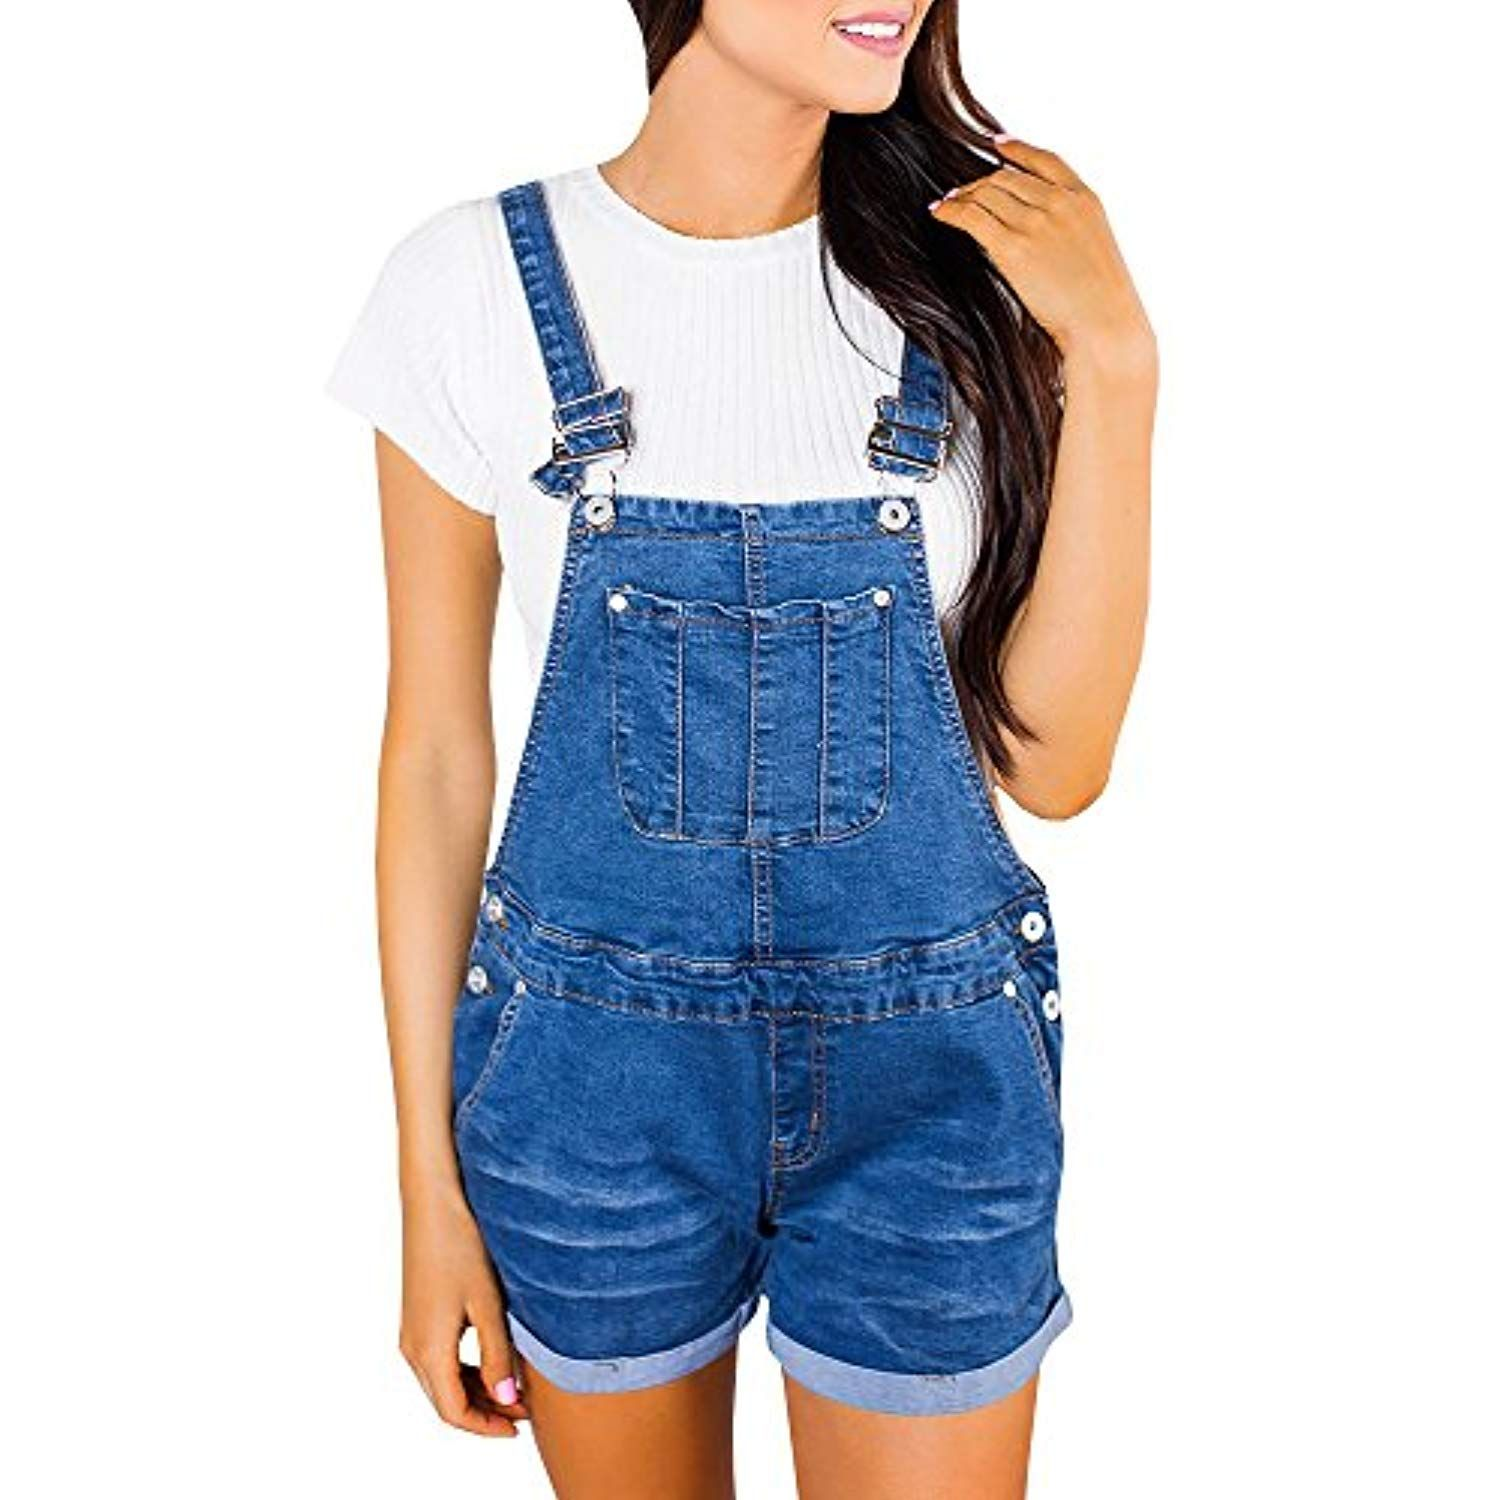 741da31a62 Womens Ripped Denim Bib Overall Shorts Summer Maternity Juniors Distressed  Jeans     More info could be found at the image url. (This is an affiliate  link) ...